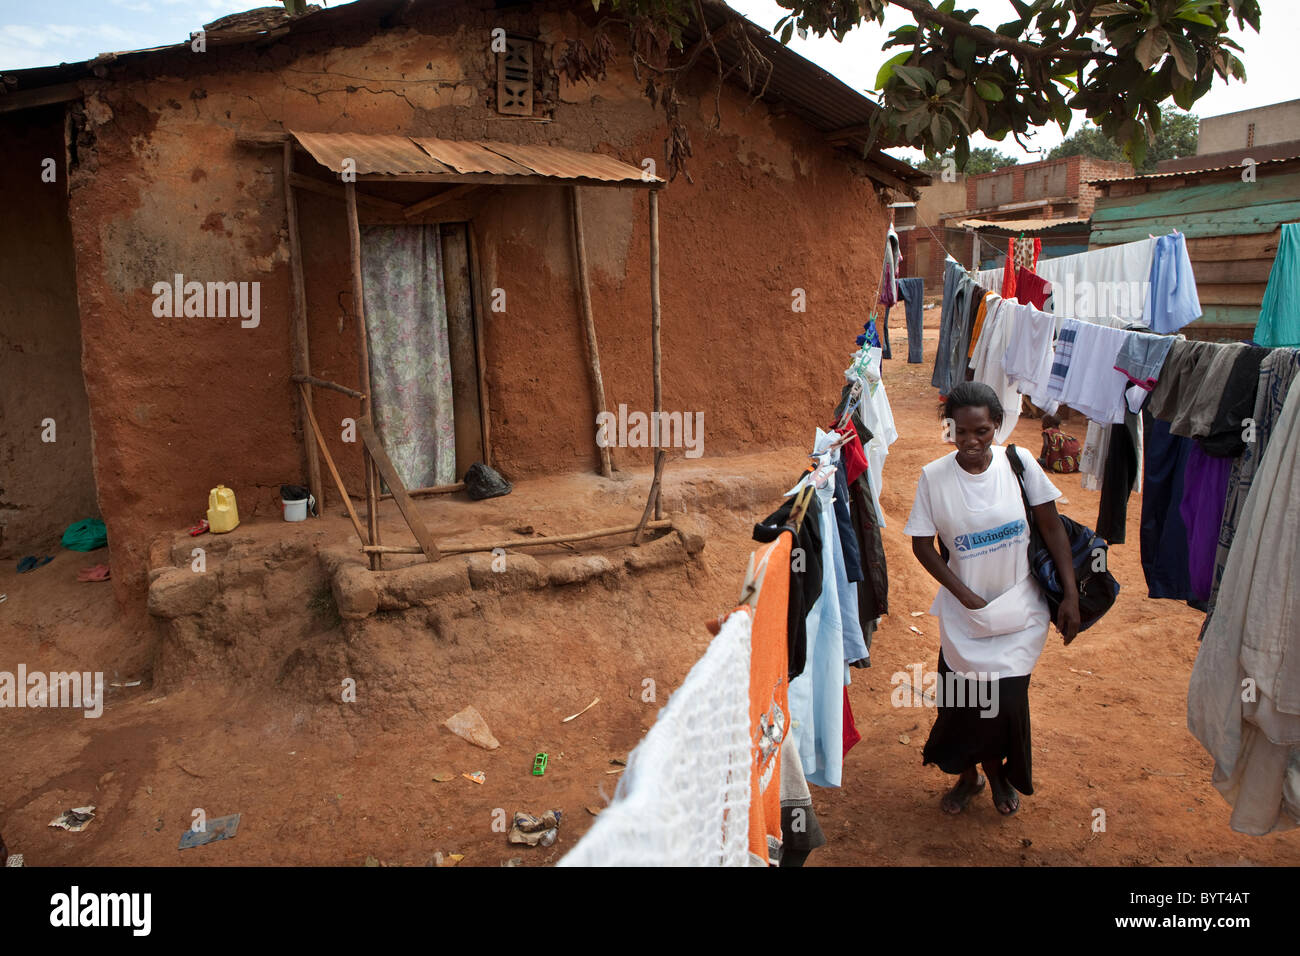 A community health care worker with the NGO Living Goods walks through a slum in Kampala, Uganda, East Africa. - Stock Image